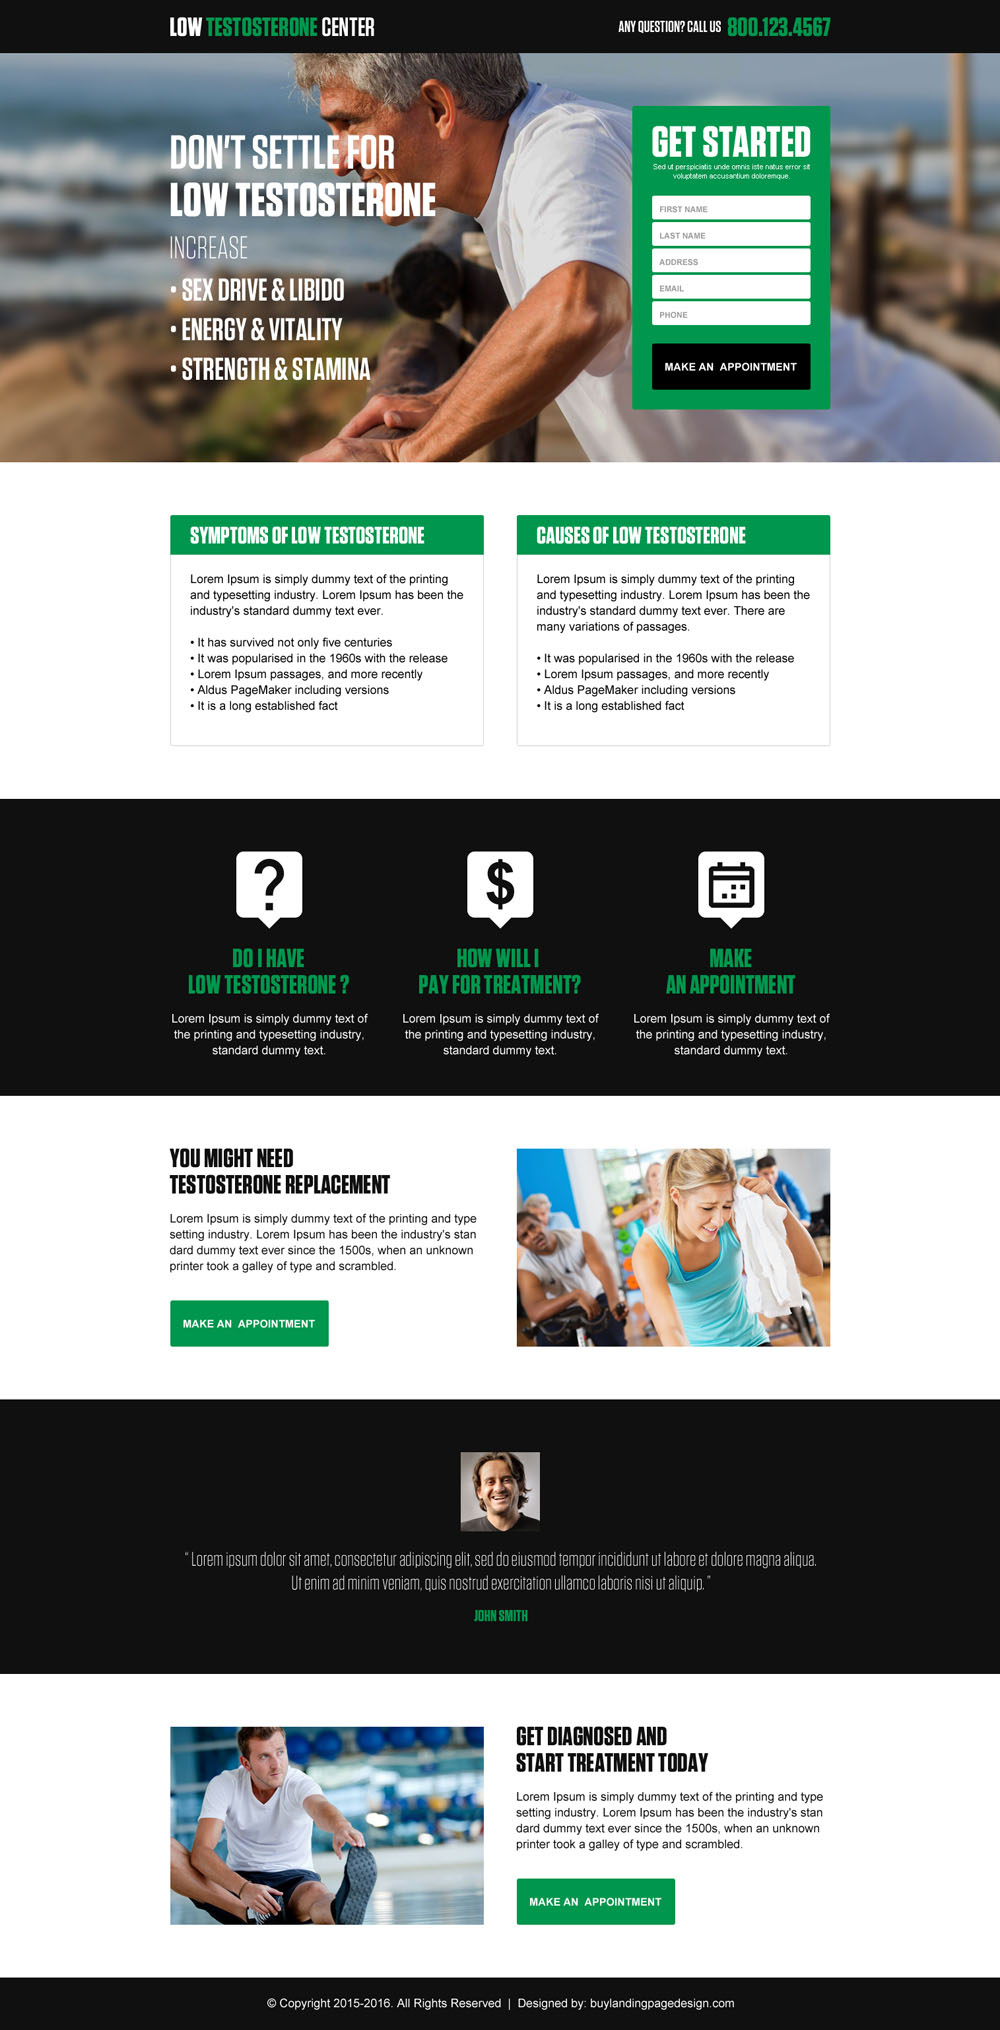 low-testosterone-natural-treatment-responsive-lead-generation-landing-page-design-001